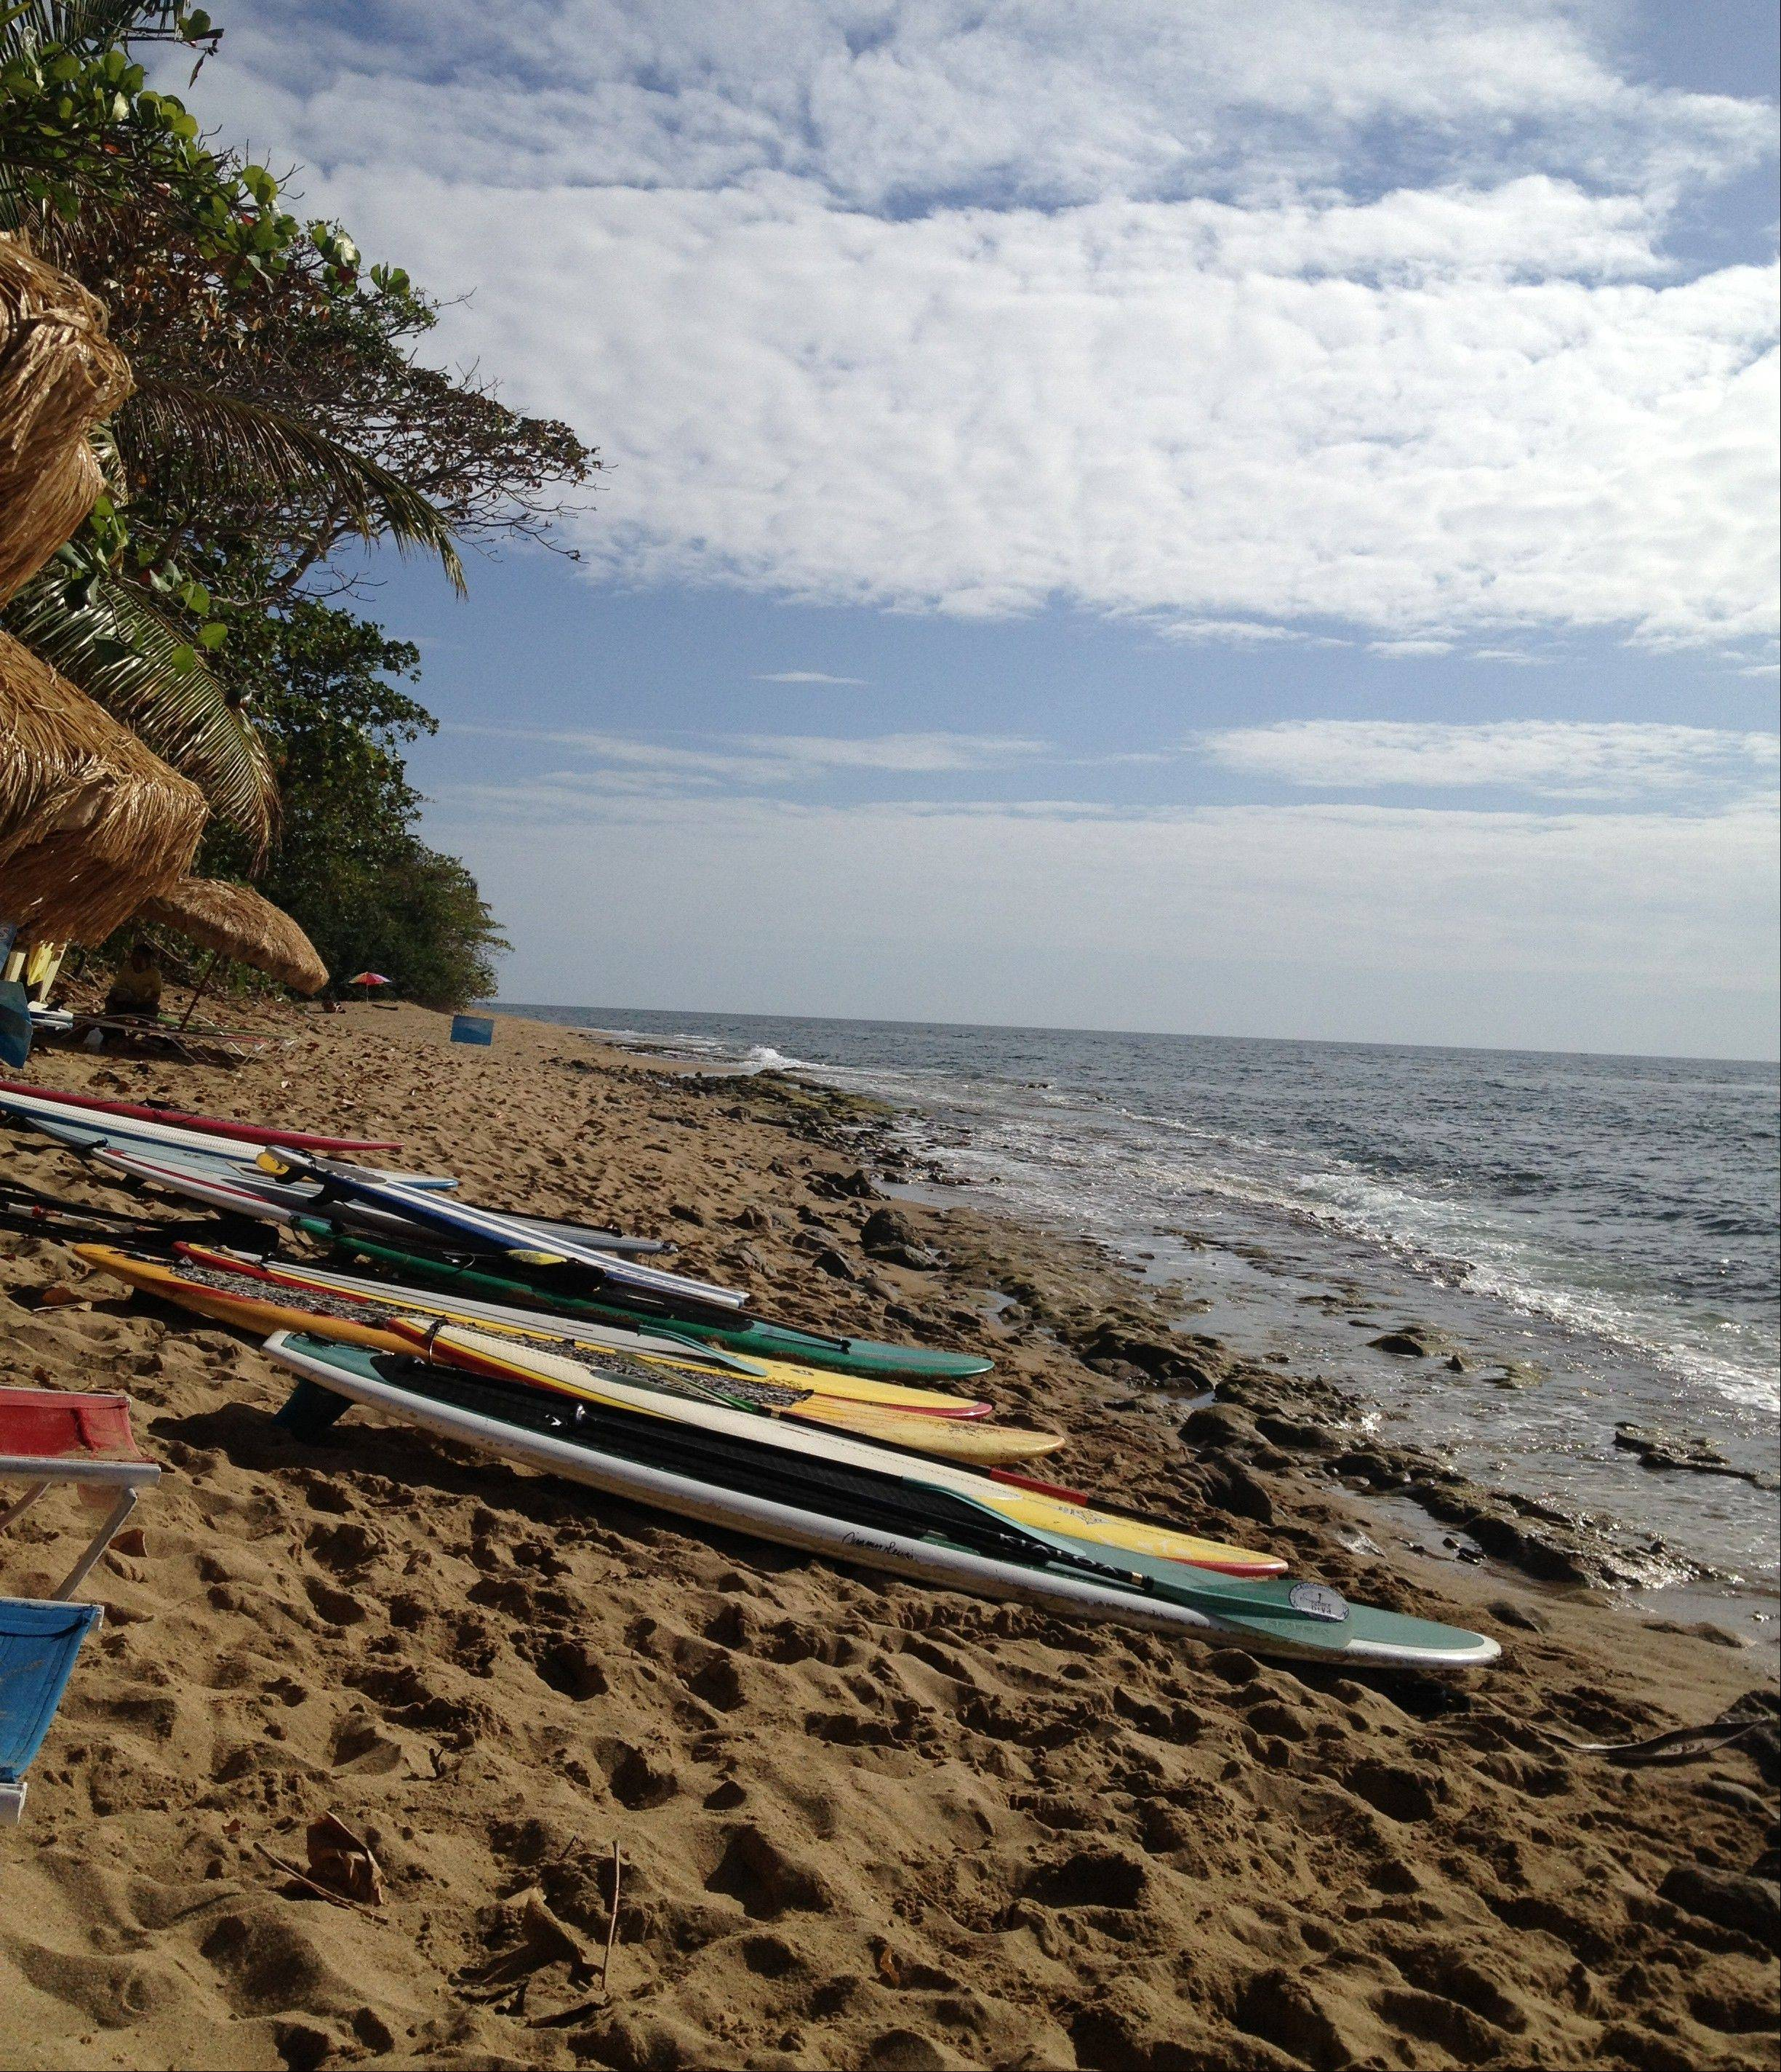 Paddleboards are lined up on the beach in Rincon, Puerto Rico, for use by guests at a stand-up paddleboard and yoga retreat.